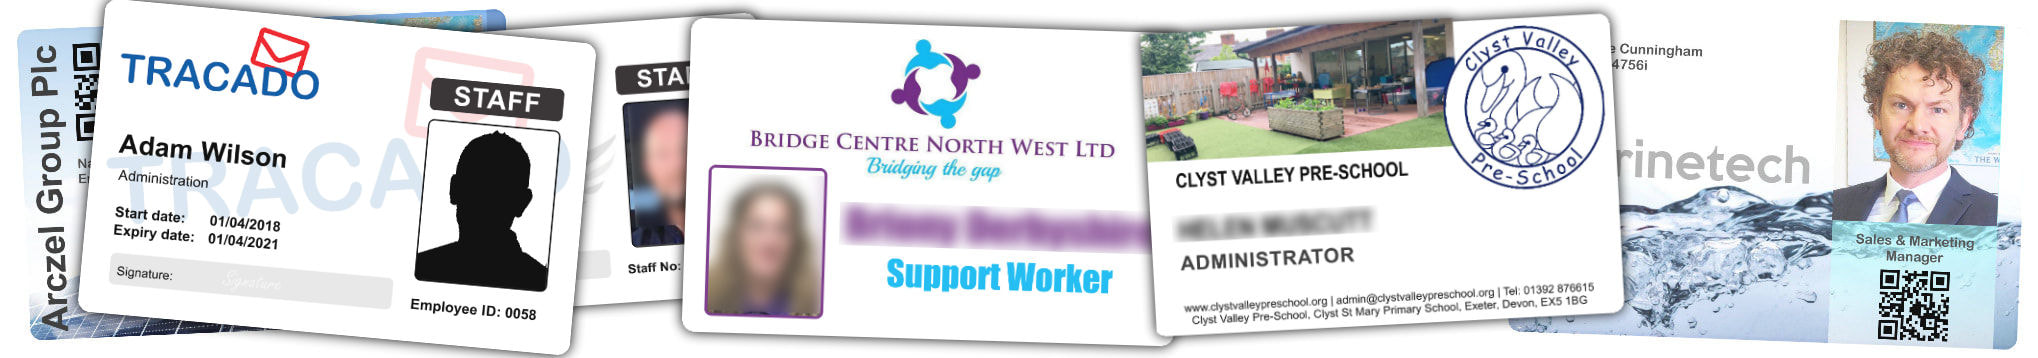 Peterborough examples of staff photo ID cards | samples of employee Identity card printing | Workers ID cards printed in